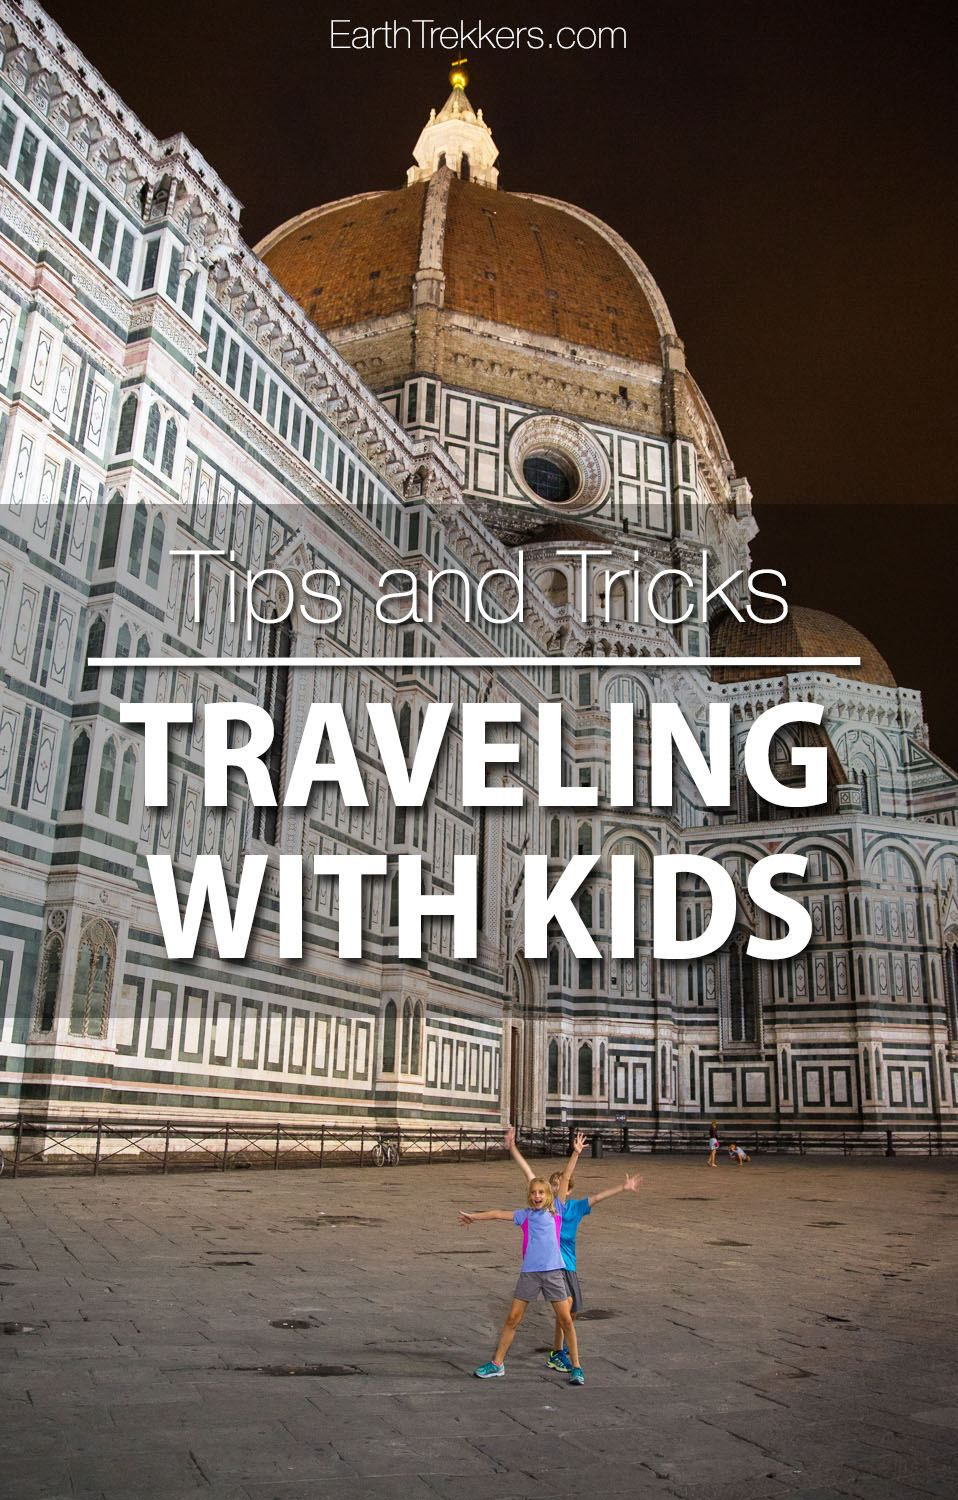 Traveling with kids travel advice